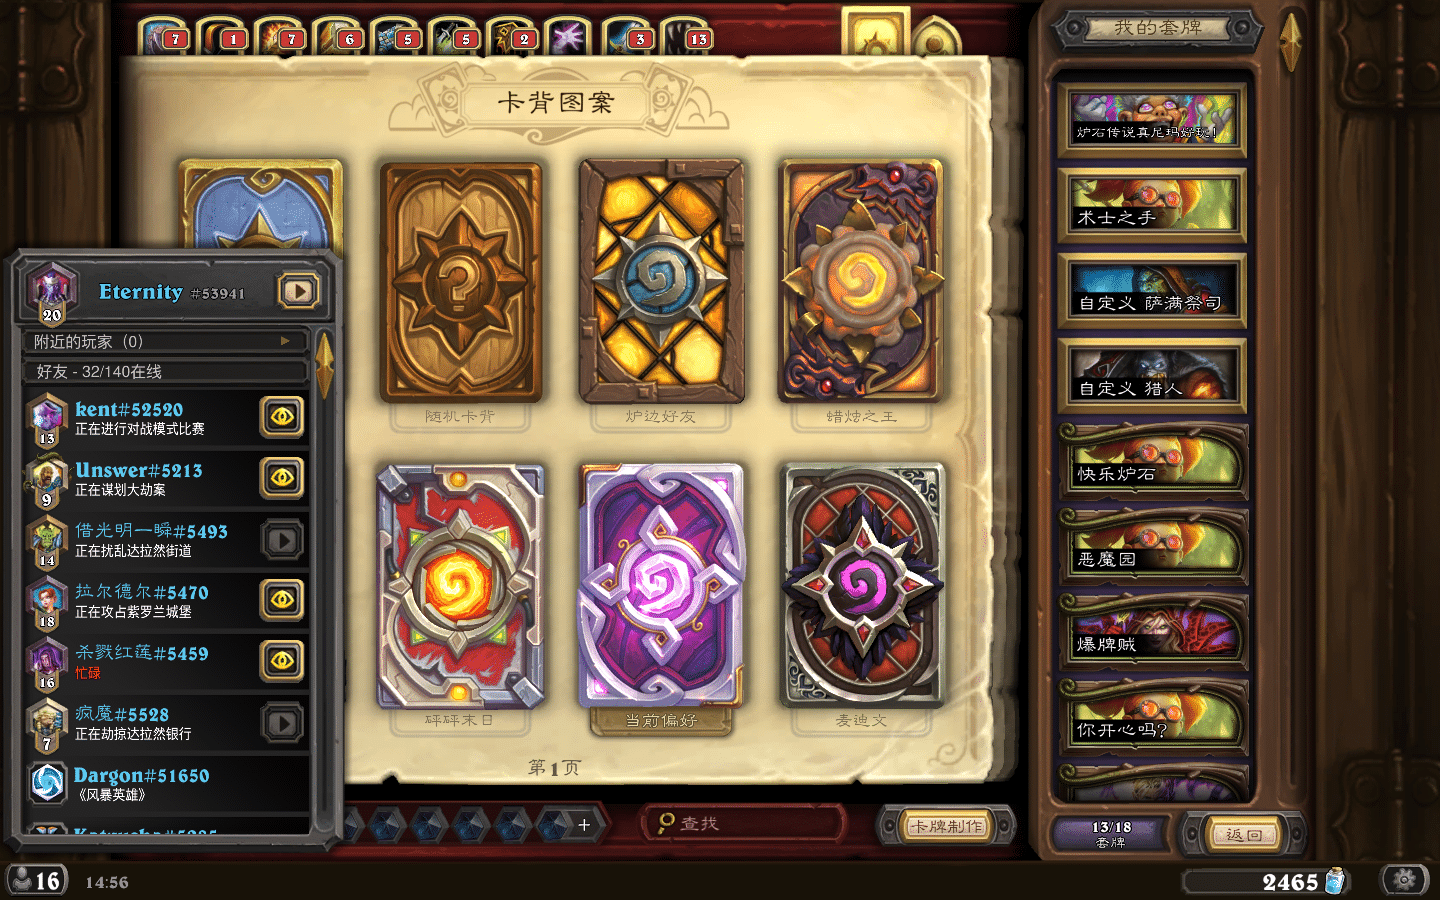 Hearthstone Screenshot 06-08-19 14.56.46.png